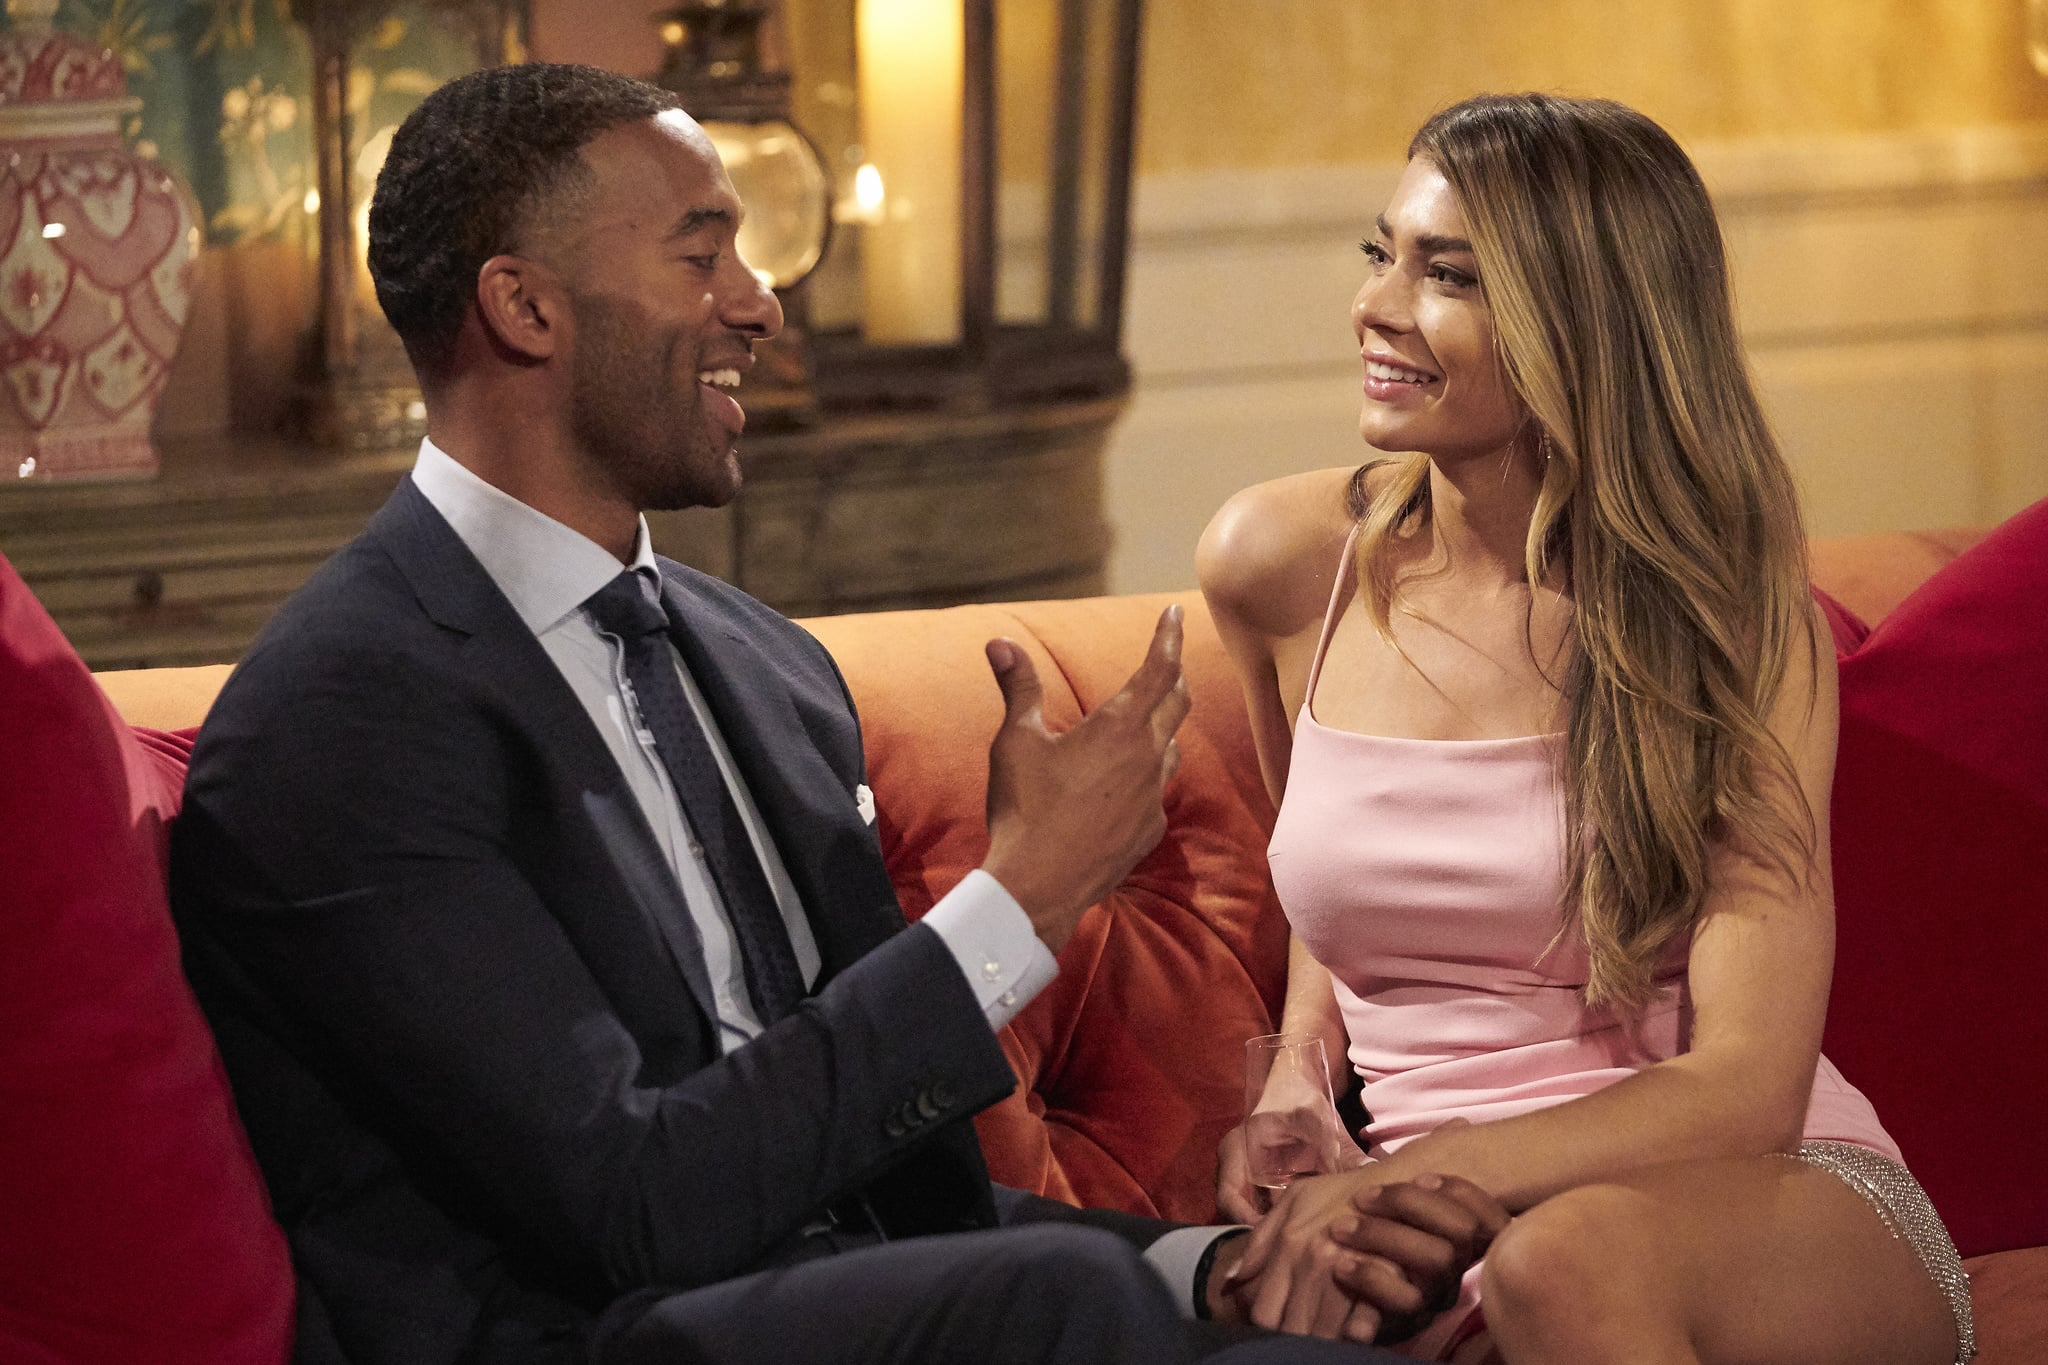 THE BACHELOR - 2502  The 24 women who survived the rose ceremony on arrival night discover that dating Matt is intoxicating although the atmosphere among the women is plain toxic. Matts adventurous first date with Bri triggers an emotional bombshell between the other jealous women, including Victoria. The largest group date in Bachelor history has 18 women dress up for a wedding photo shoot, with Matt as the groom kissing his brides. Sarah is thrilled to join Matt on a romantic ride aboard a 1930s biplane, but the love-struck bachelorette is having a difficult time seeing him with other ladies, leading to multiple women spiraling out of control on The Bachelor, airing MONDAY, JAN. 11 (8:00-10:00 p.m. EST), on ABC. (ABC/Craig Sjodin)MATT JAMES, SARAH